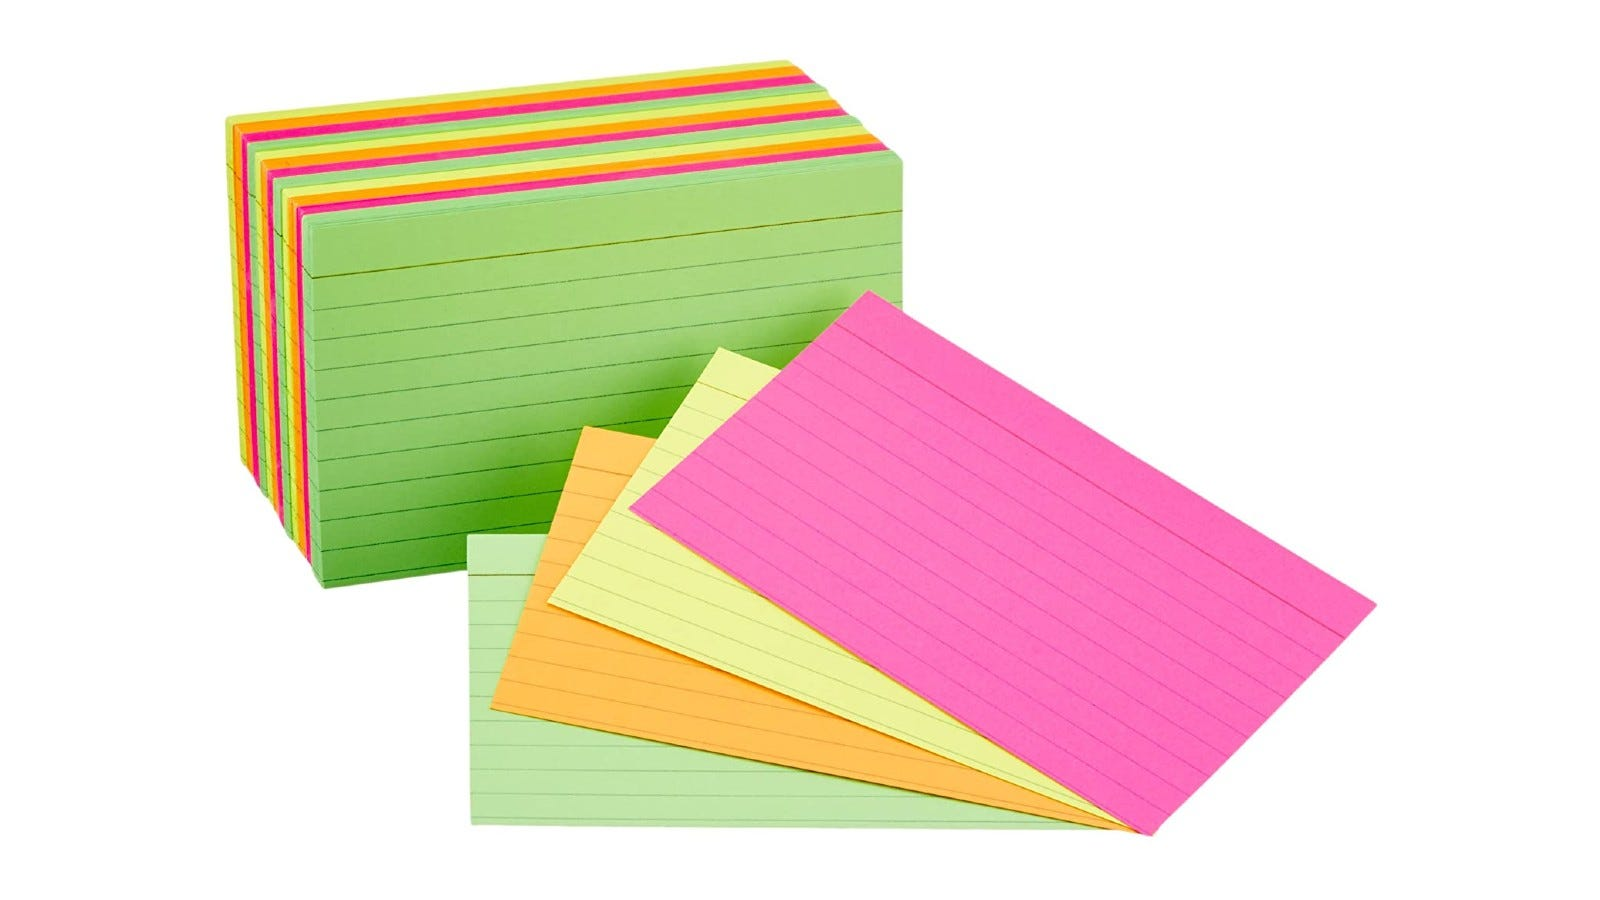 Multicolored lined flashcards stacked